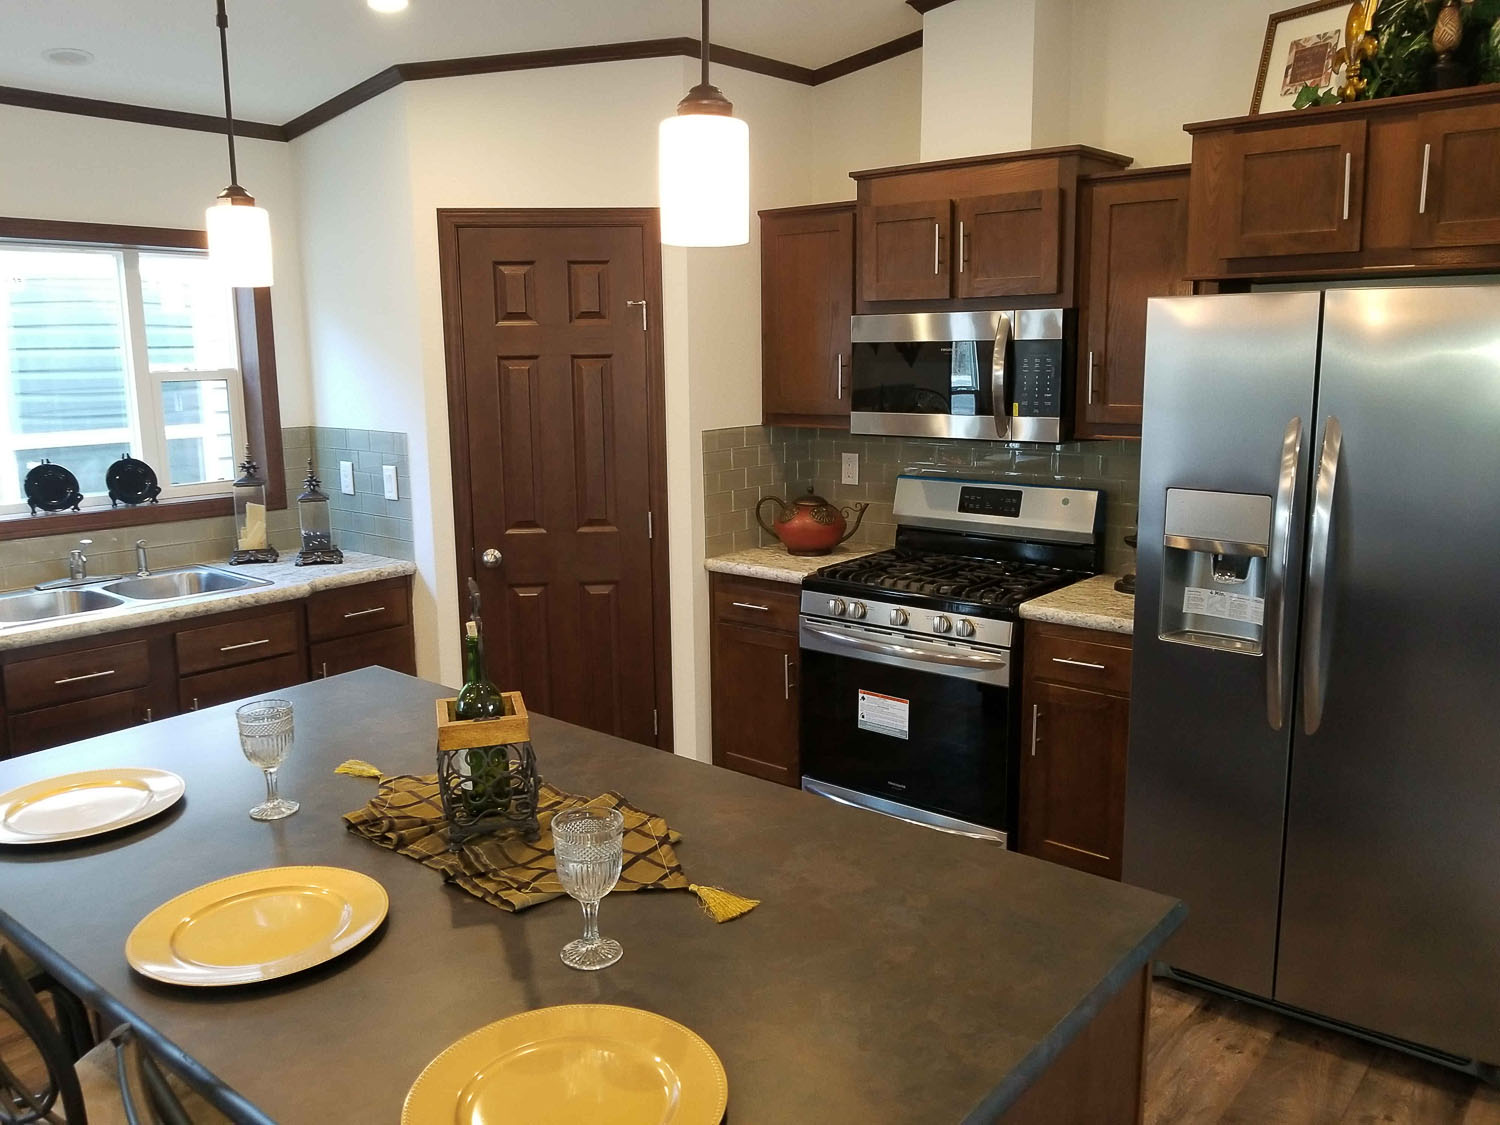 Kitchen of the Hearthside Manufactured Home Model